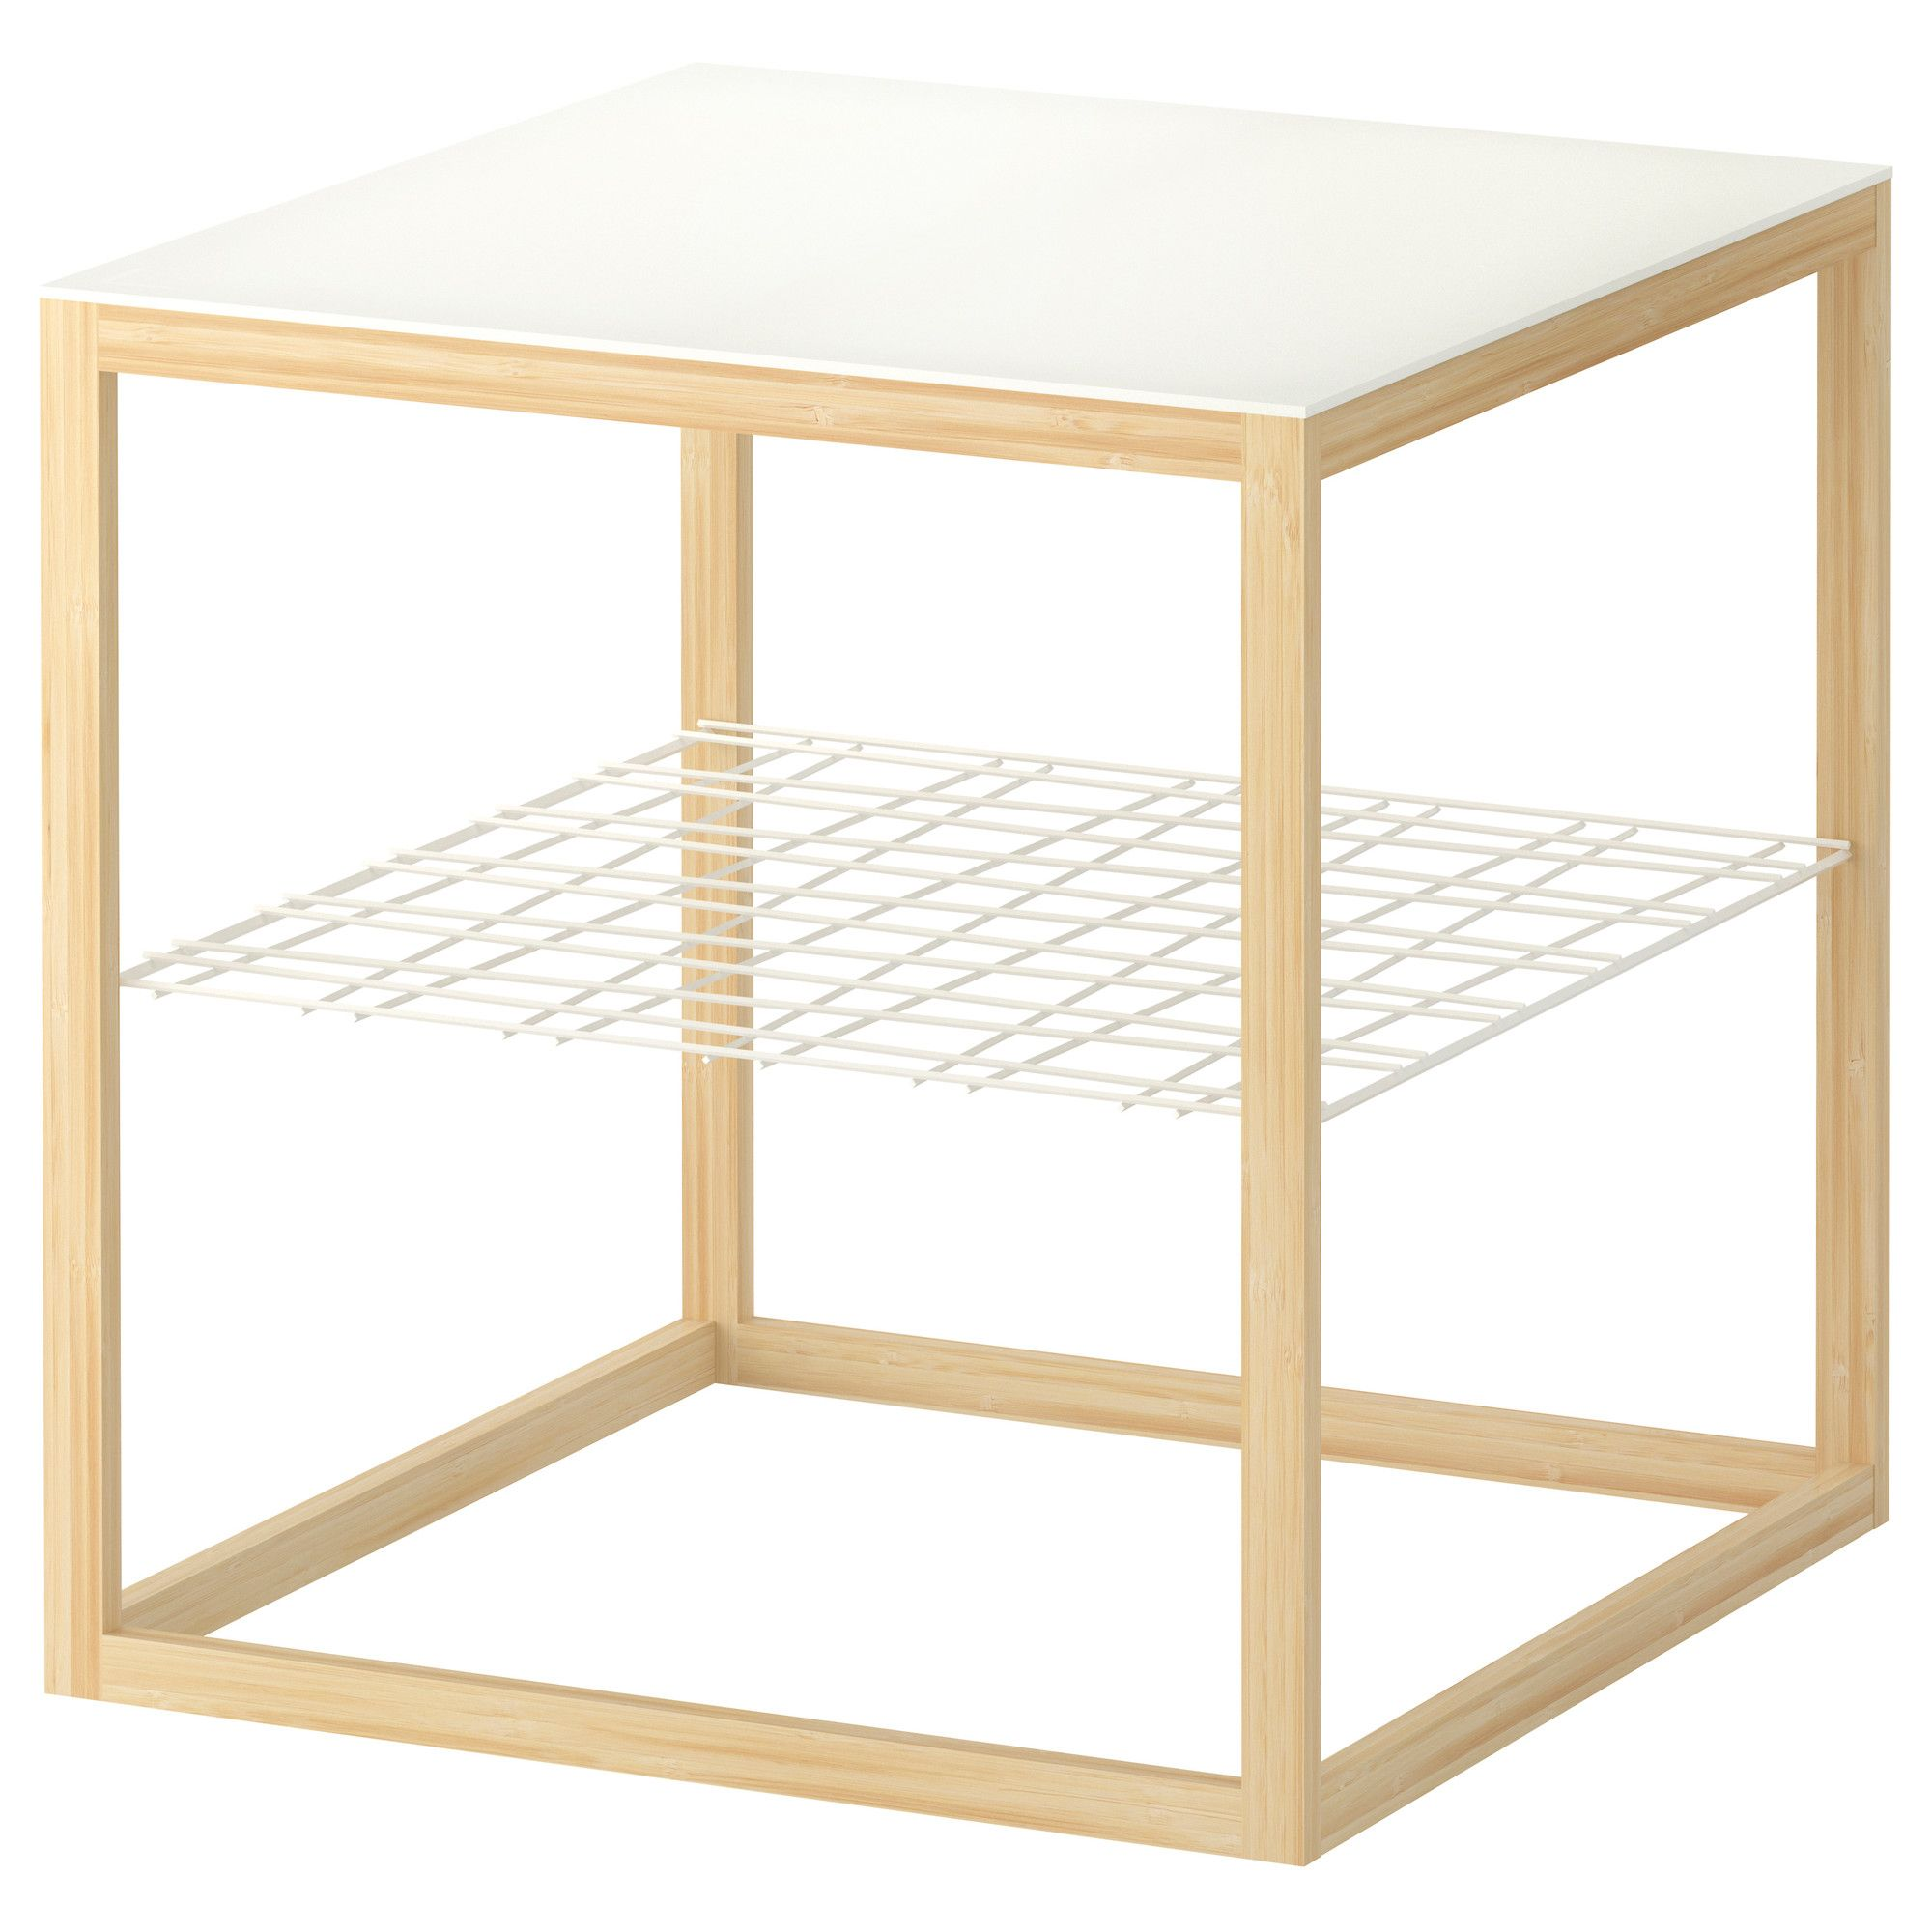 IKEA PS 2012 Side table white bamboo $29 99 Article Number